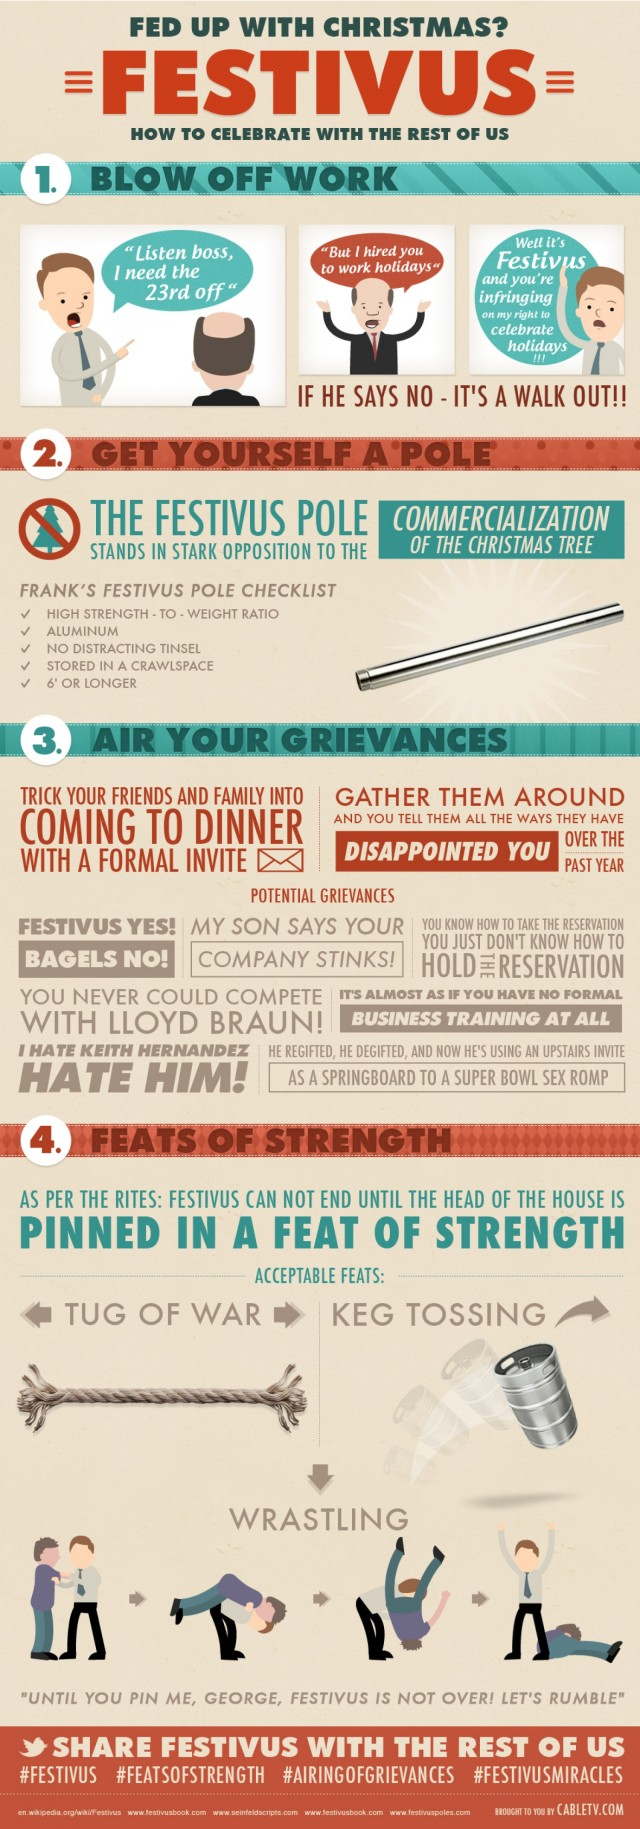 festivus-how-to-celebrate-with-the-rest-of-us_50290efaae4c3_w1500.jpg